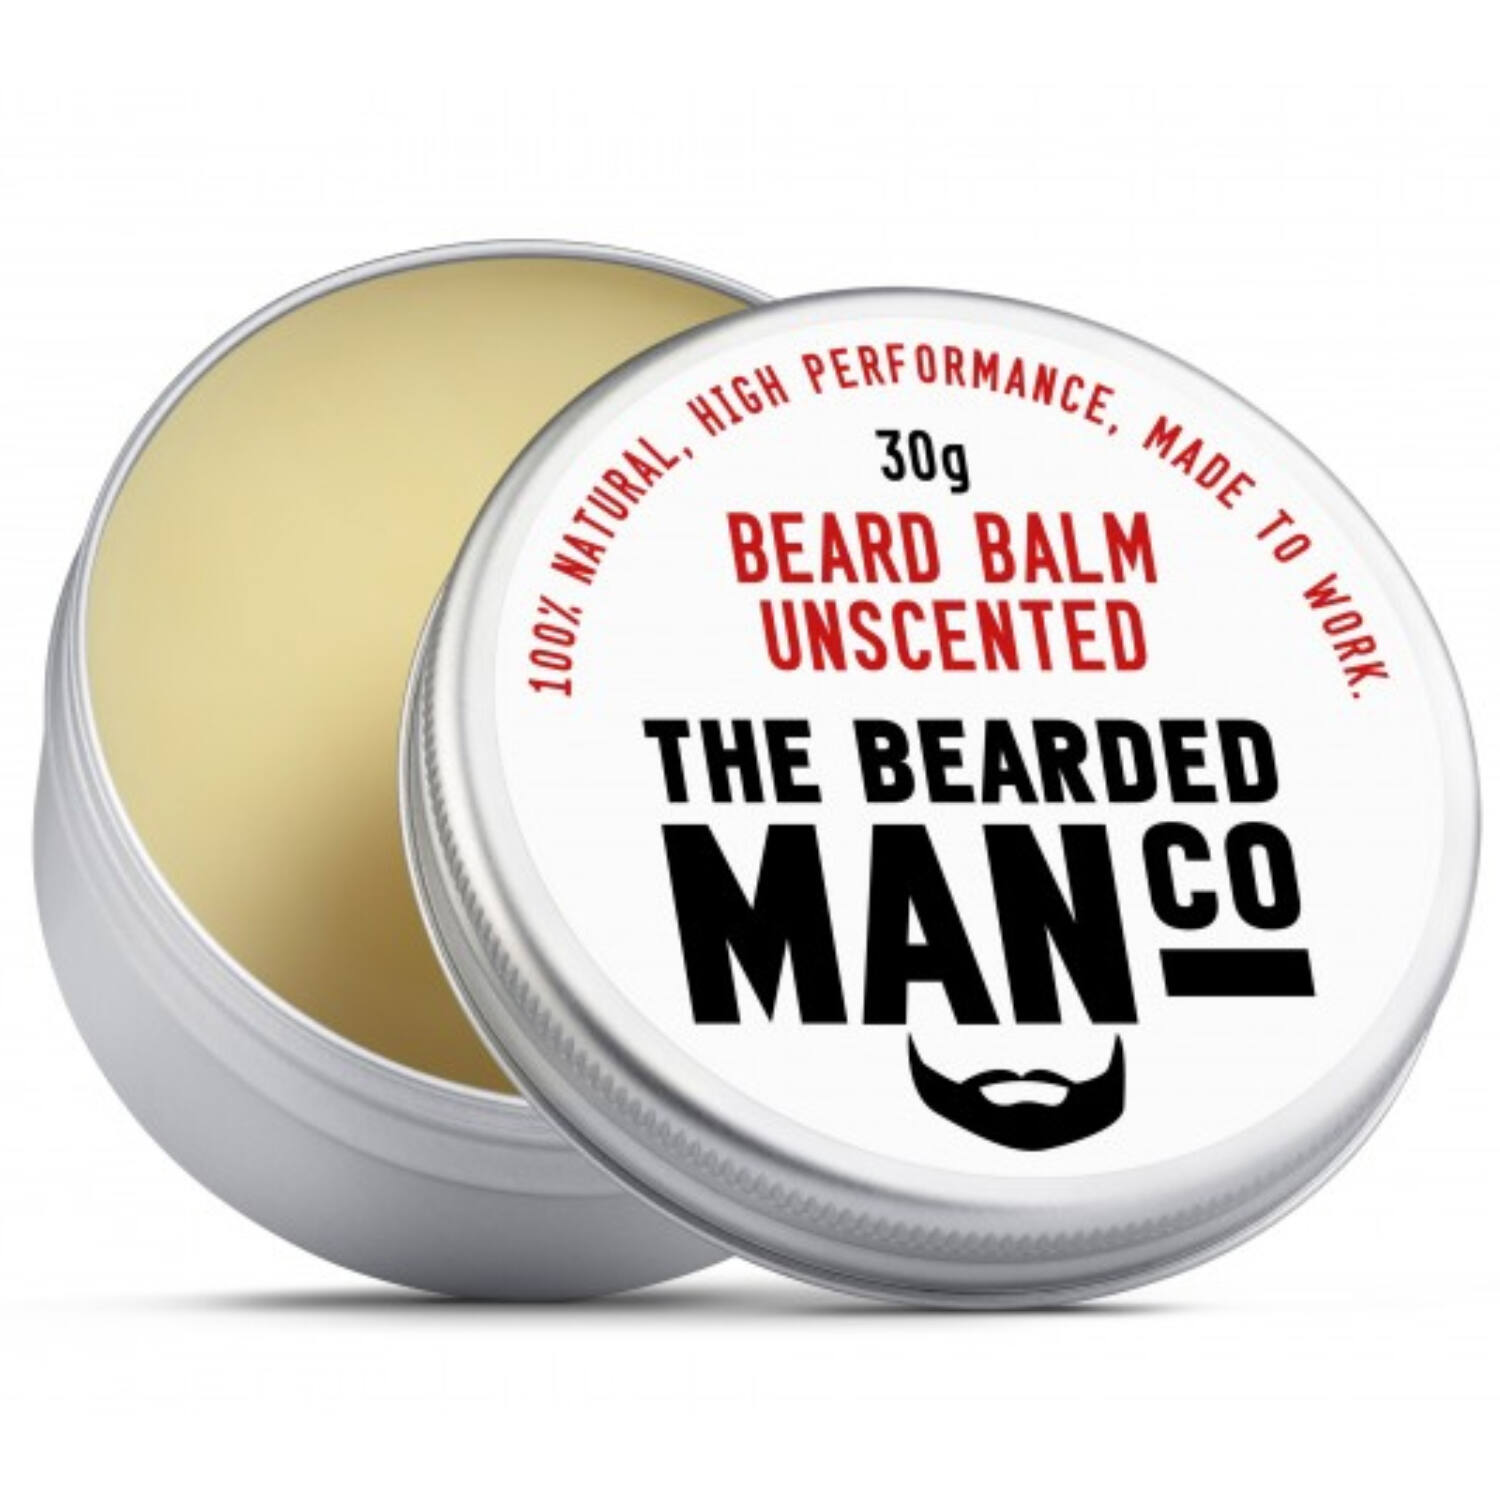 the bearded man company unscented szakállbalzsam